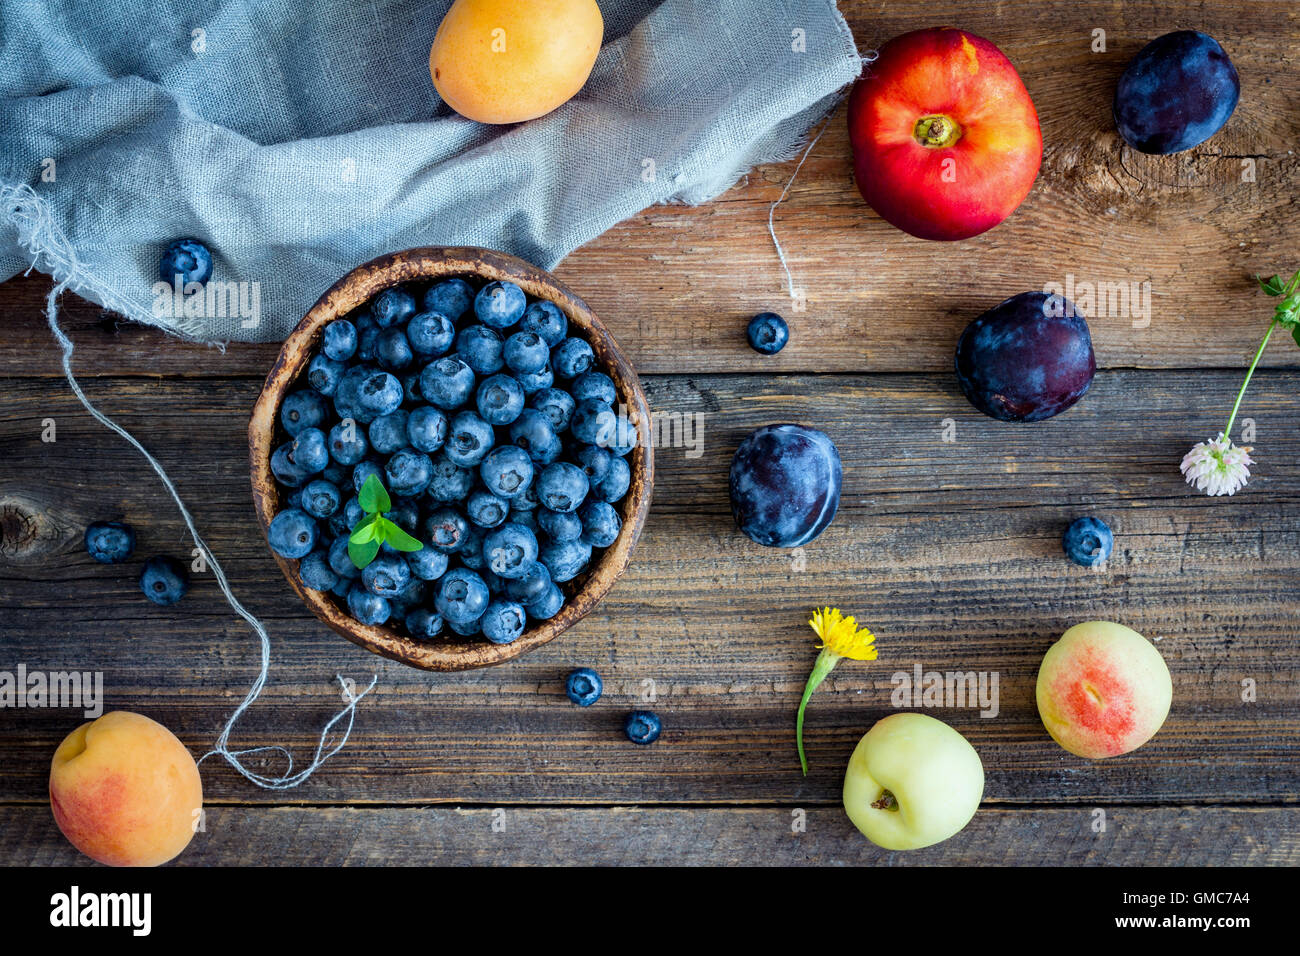 Fruits and berries on wooden background. Colorful fruit flat lay - Stock Image